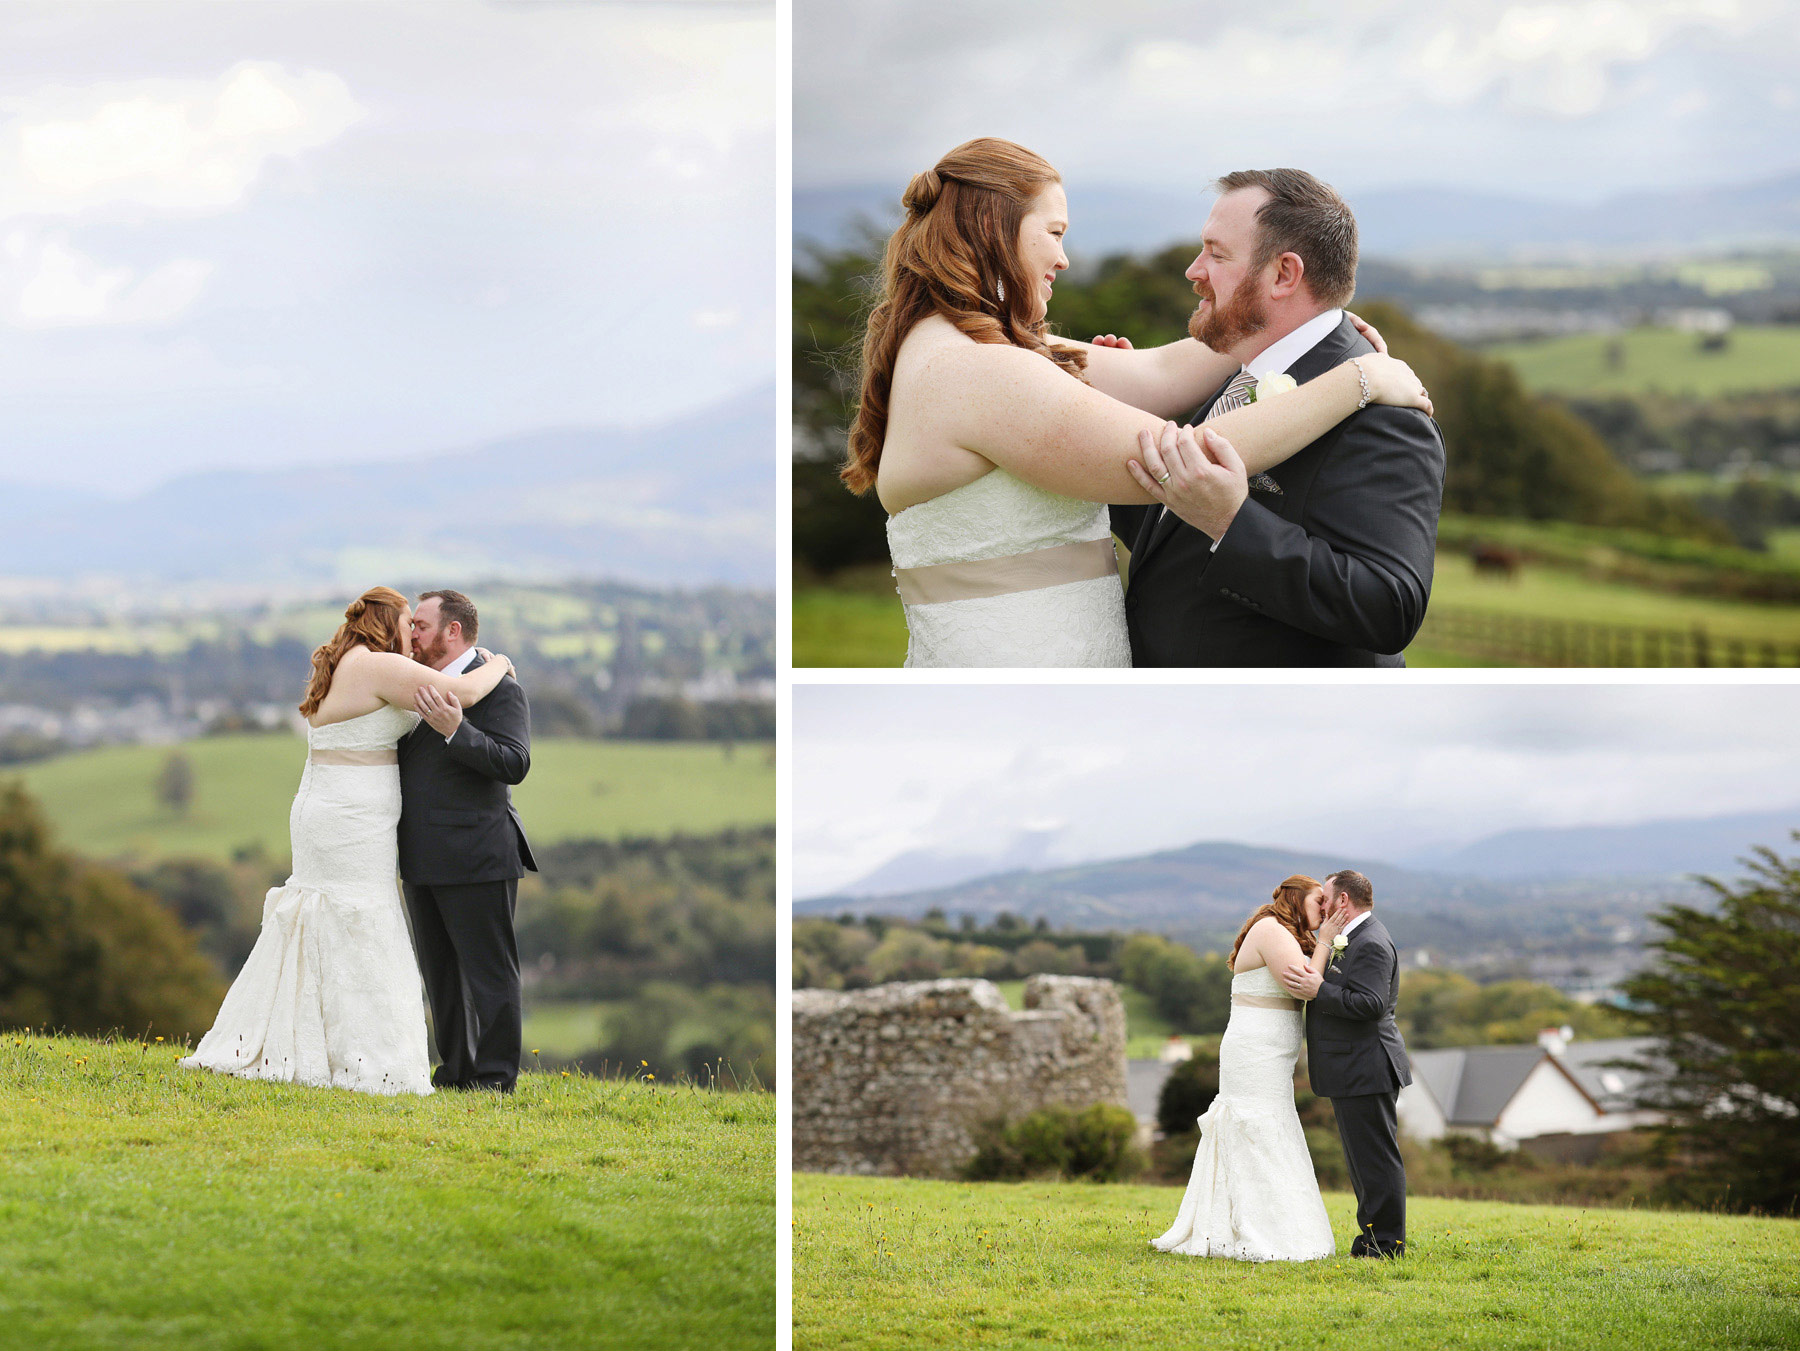 22-Kilarney-Ireland-Wedding-Photographer-by-Andrew-Vick-Photography-Fall-Autumn-Destination-First-Meeting-Look-Bride-Groom-Kiss-Embrace-Landscape-Village-Field-Becca-and-Donal.jpg